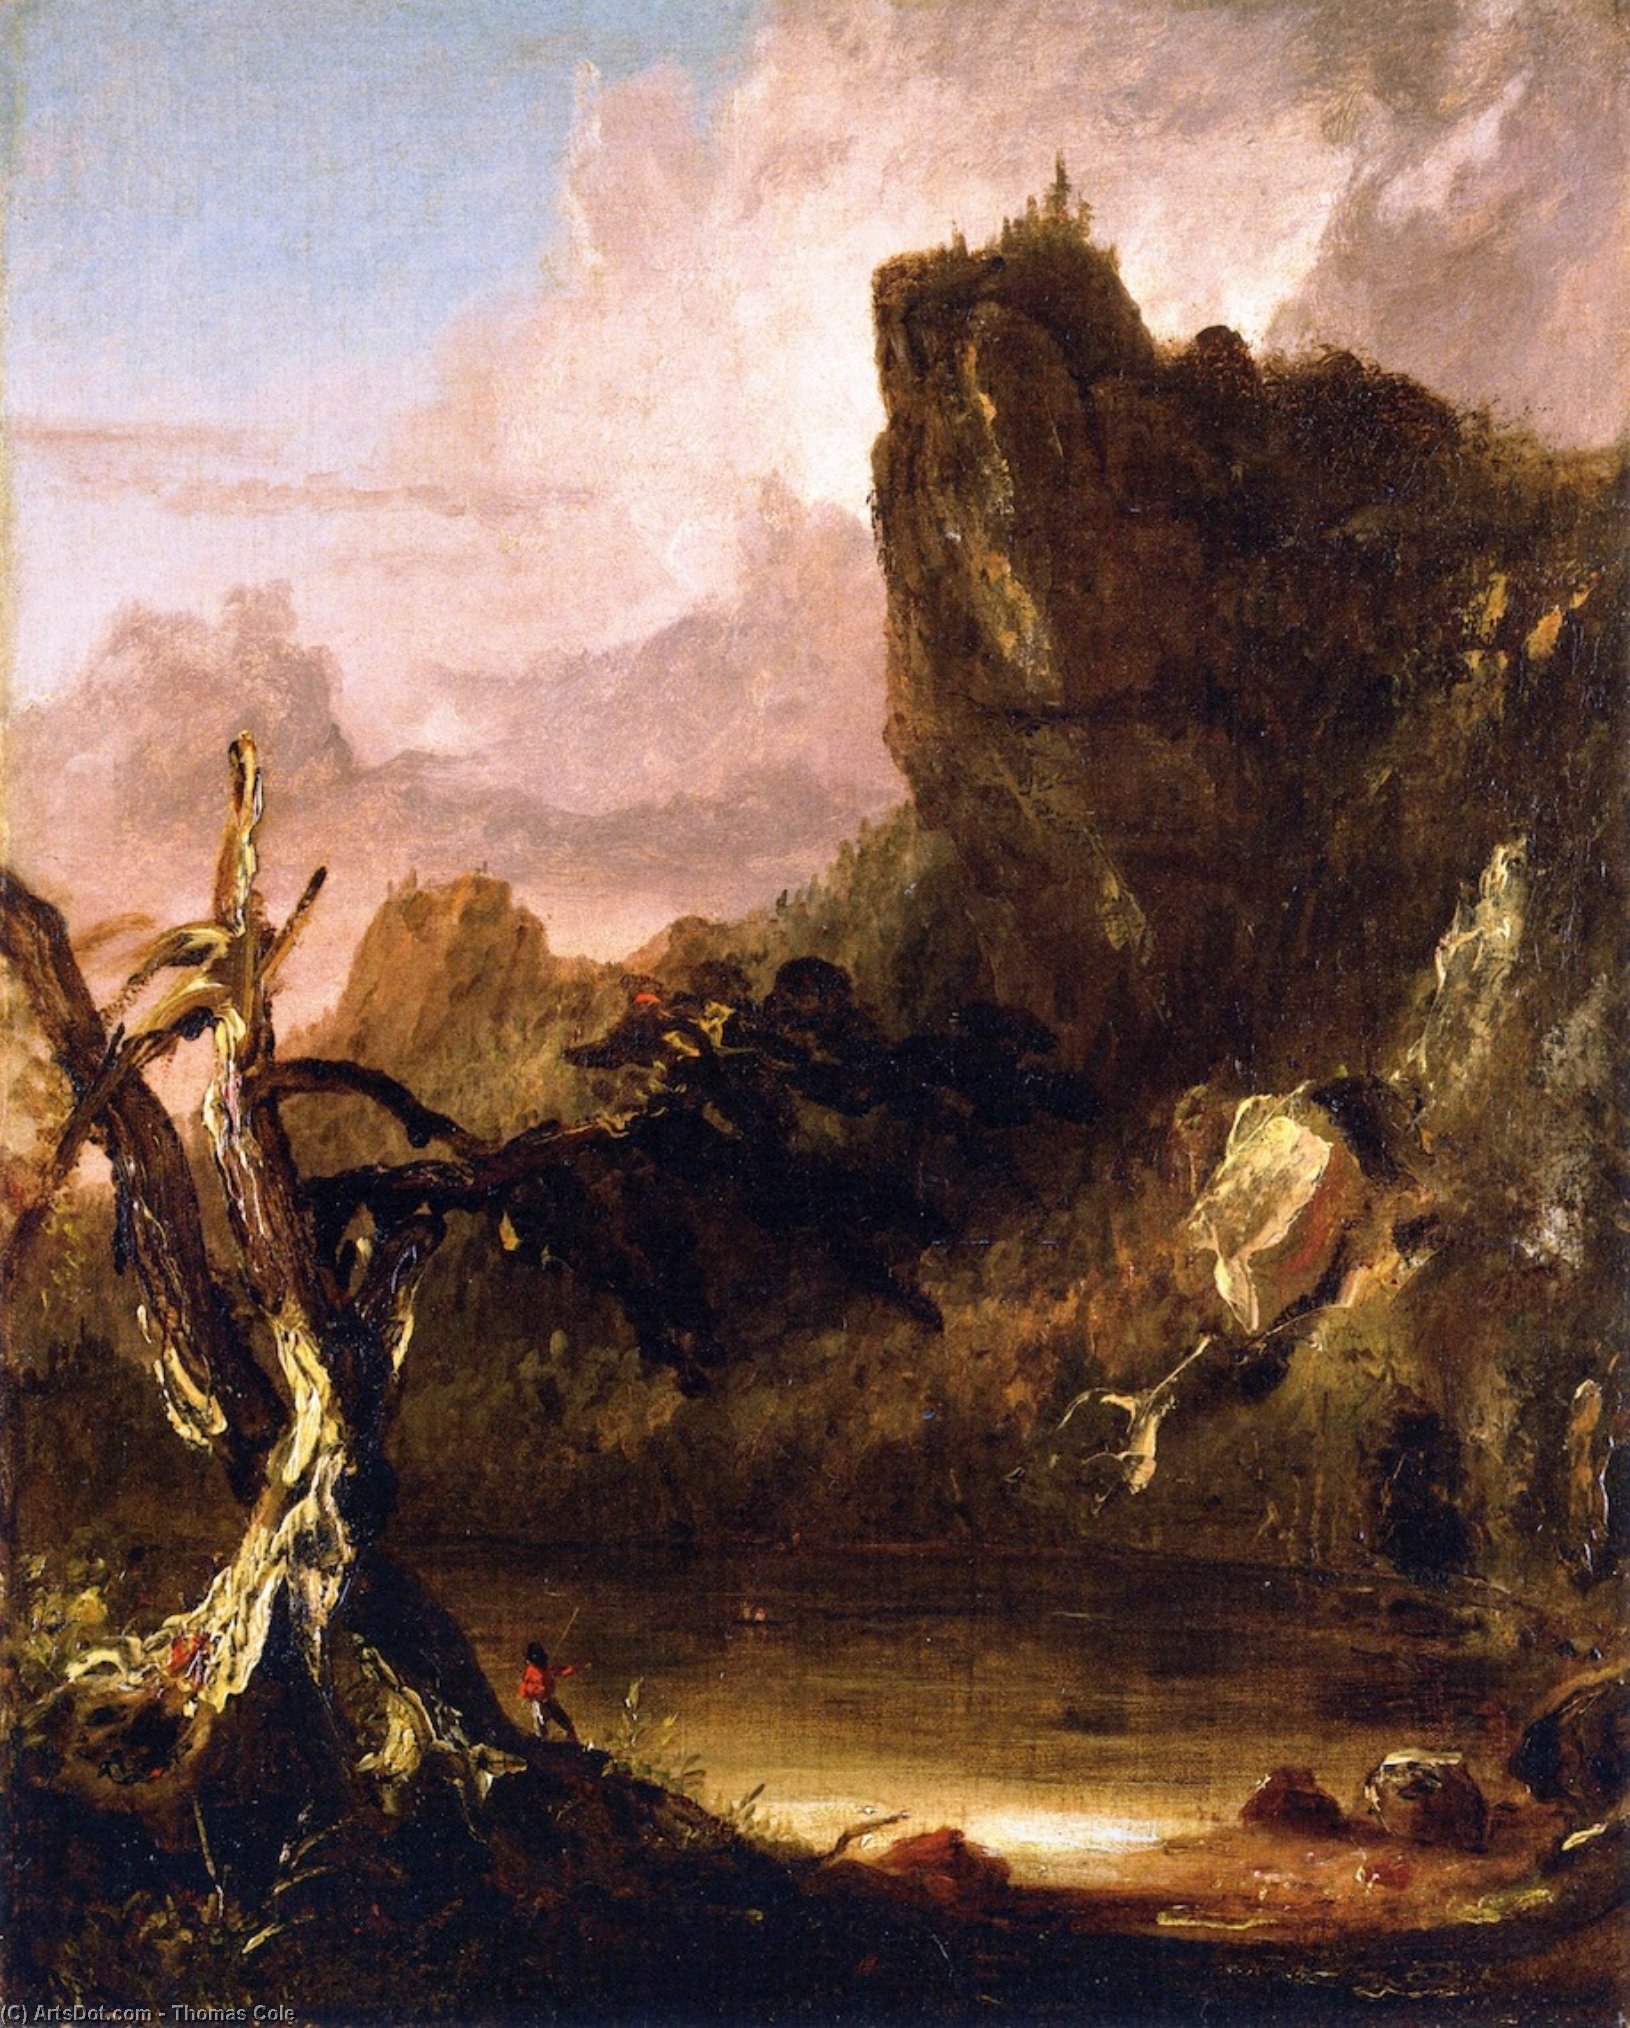 Imaginary Landscape with Towering Outcrop, Oil On Canvas by Thomas Cole (1801-1848, United Kingdom)